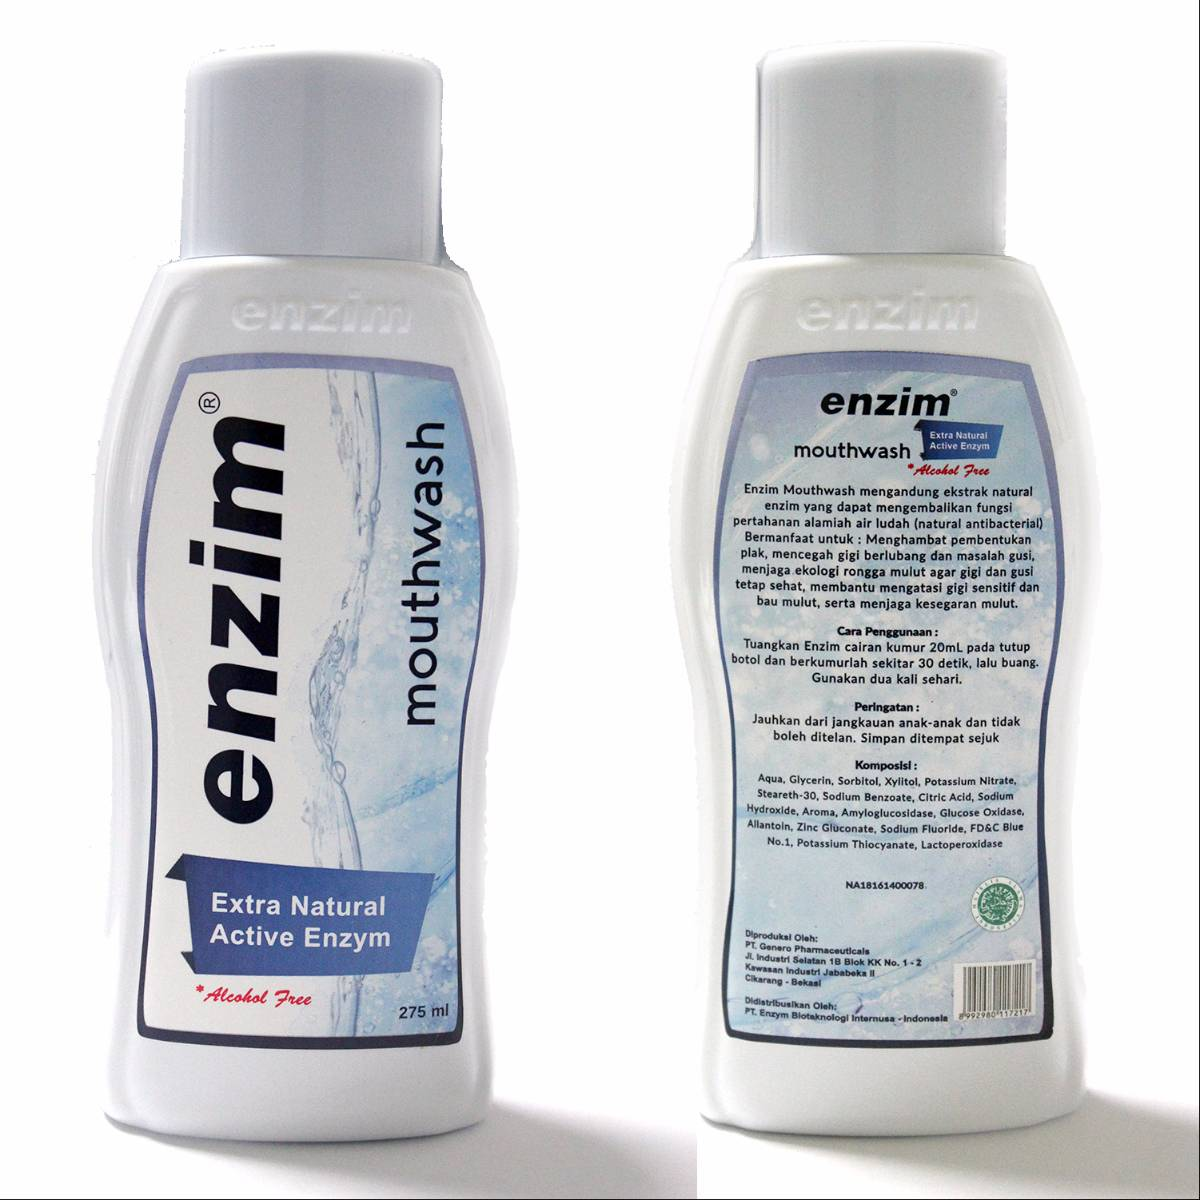 Enzim Mouthwash [275ml]2